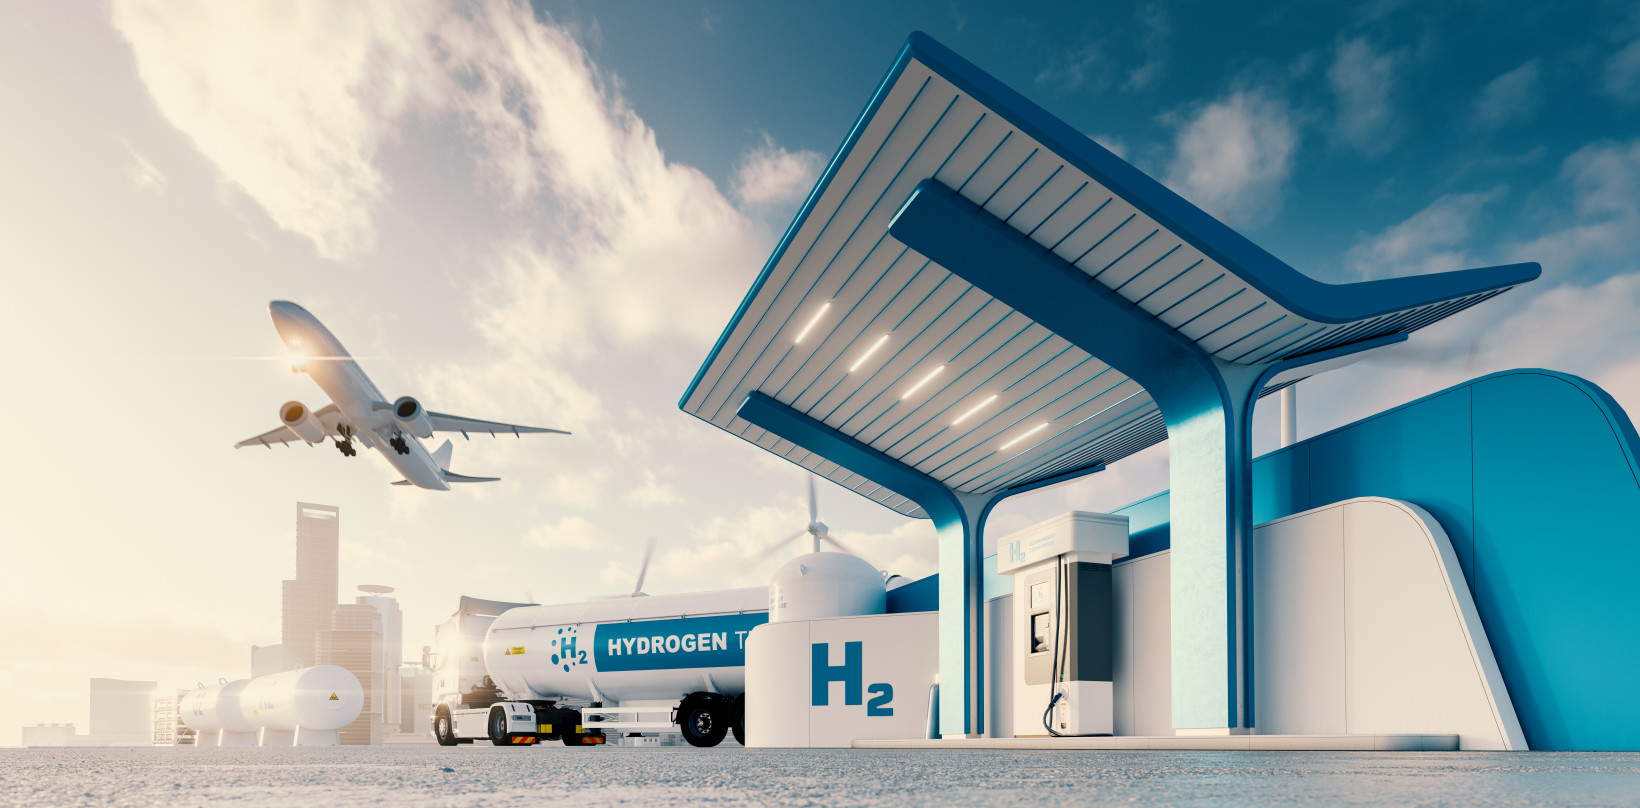 Hydrogen based plane, truck, and charging system